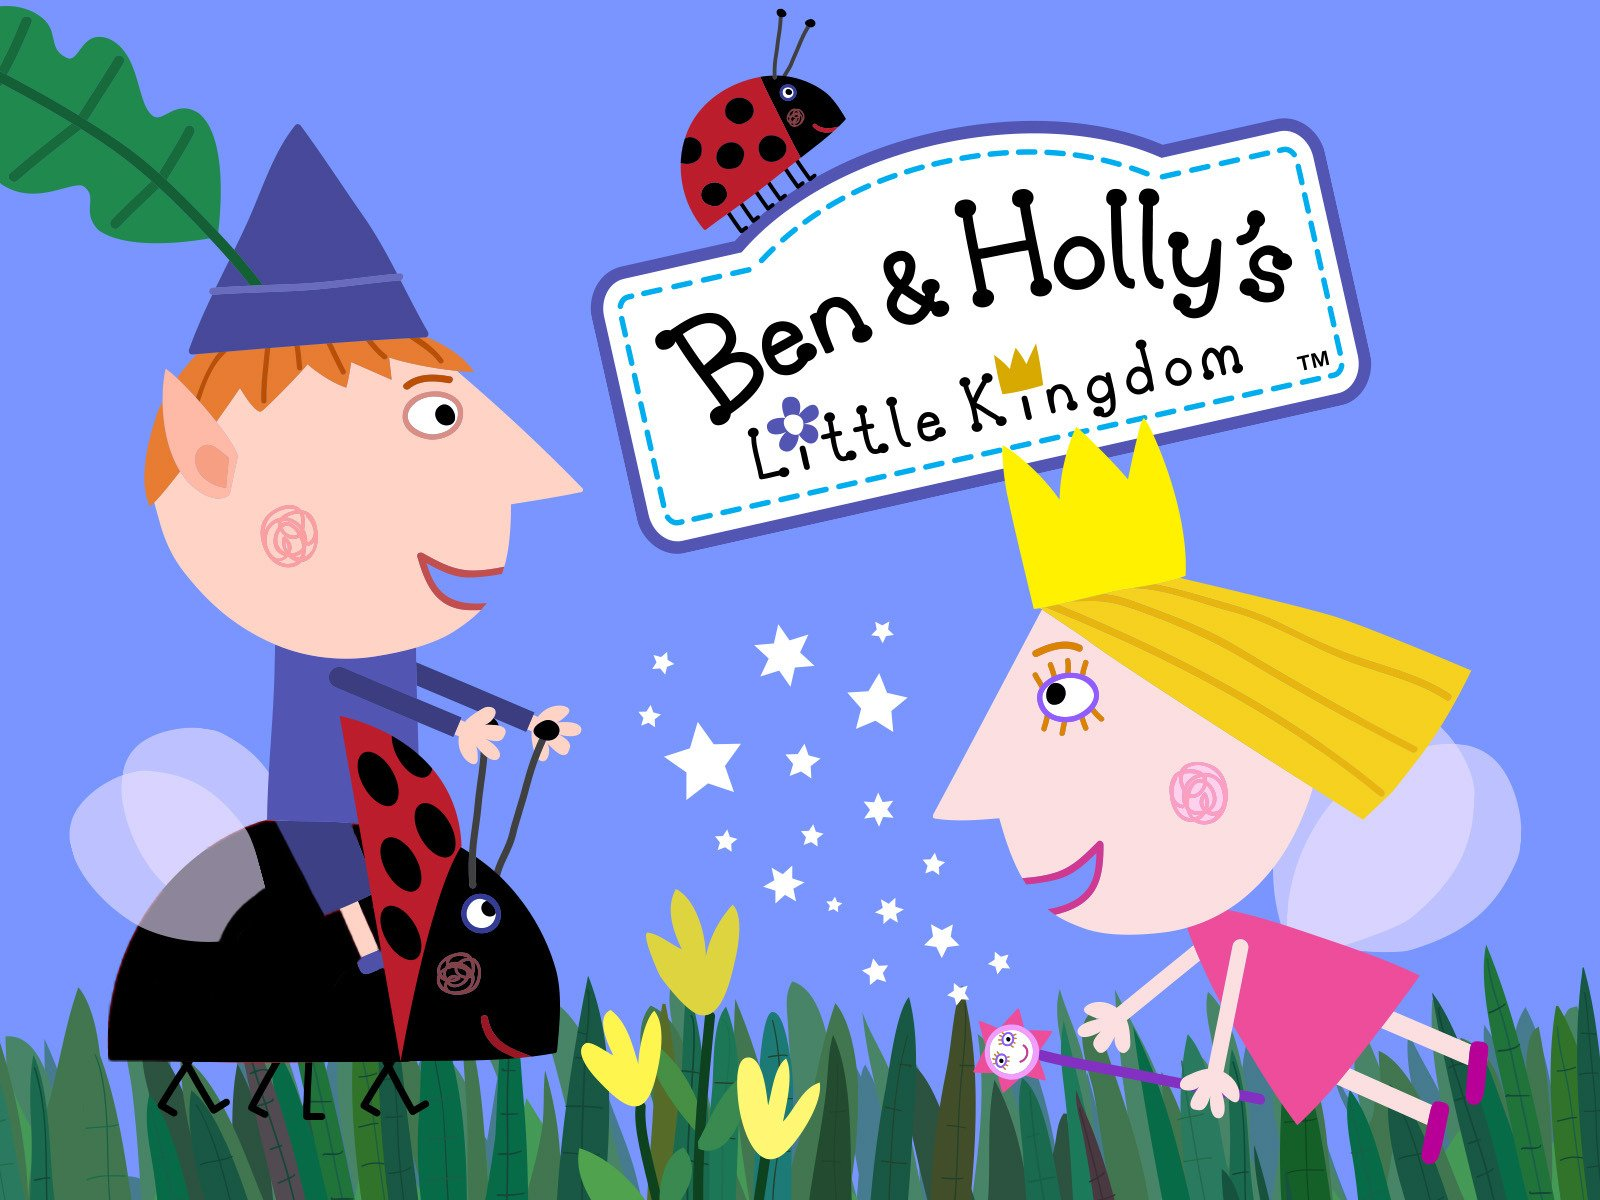 Ben e king free clipart banner freeuse library Amazon.com: Watch Ben & Holly\'s Little Kingdom, Vol. 1 | Prime Video banner freeuse library